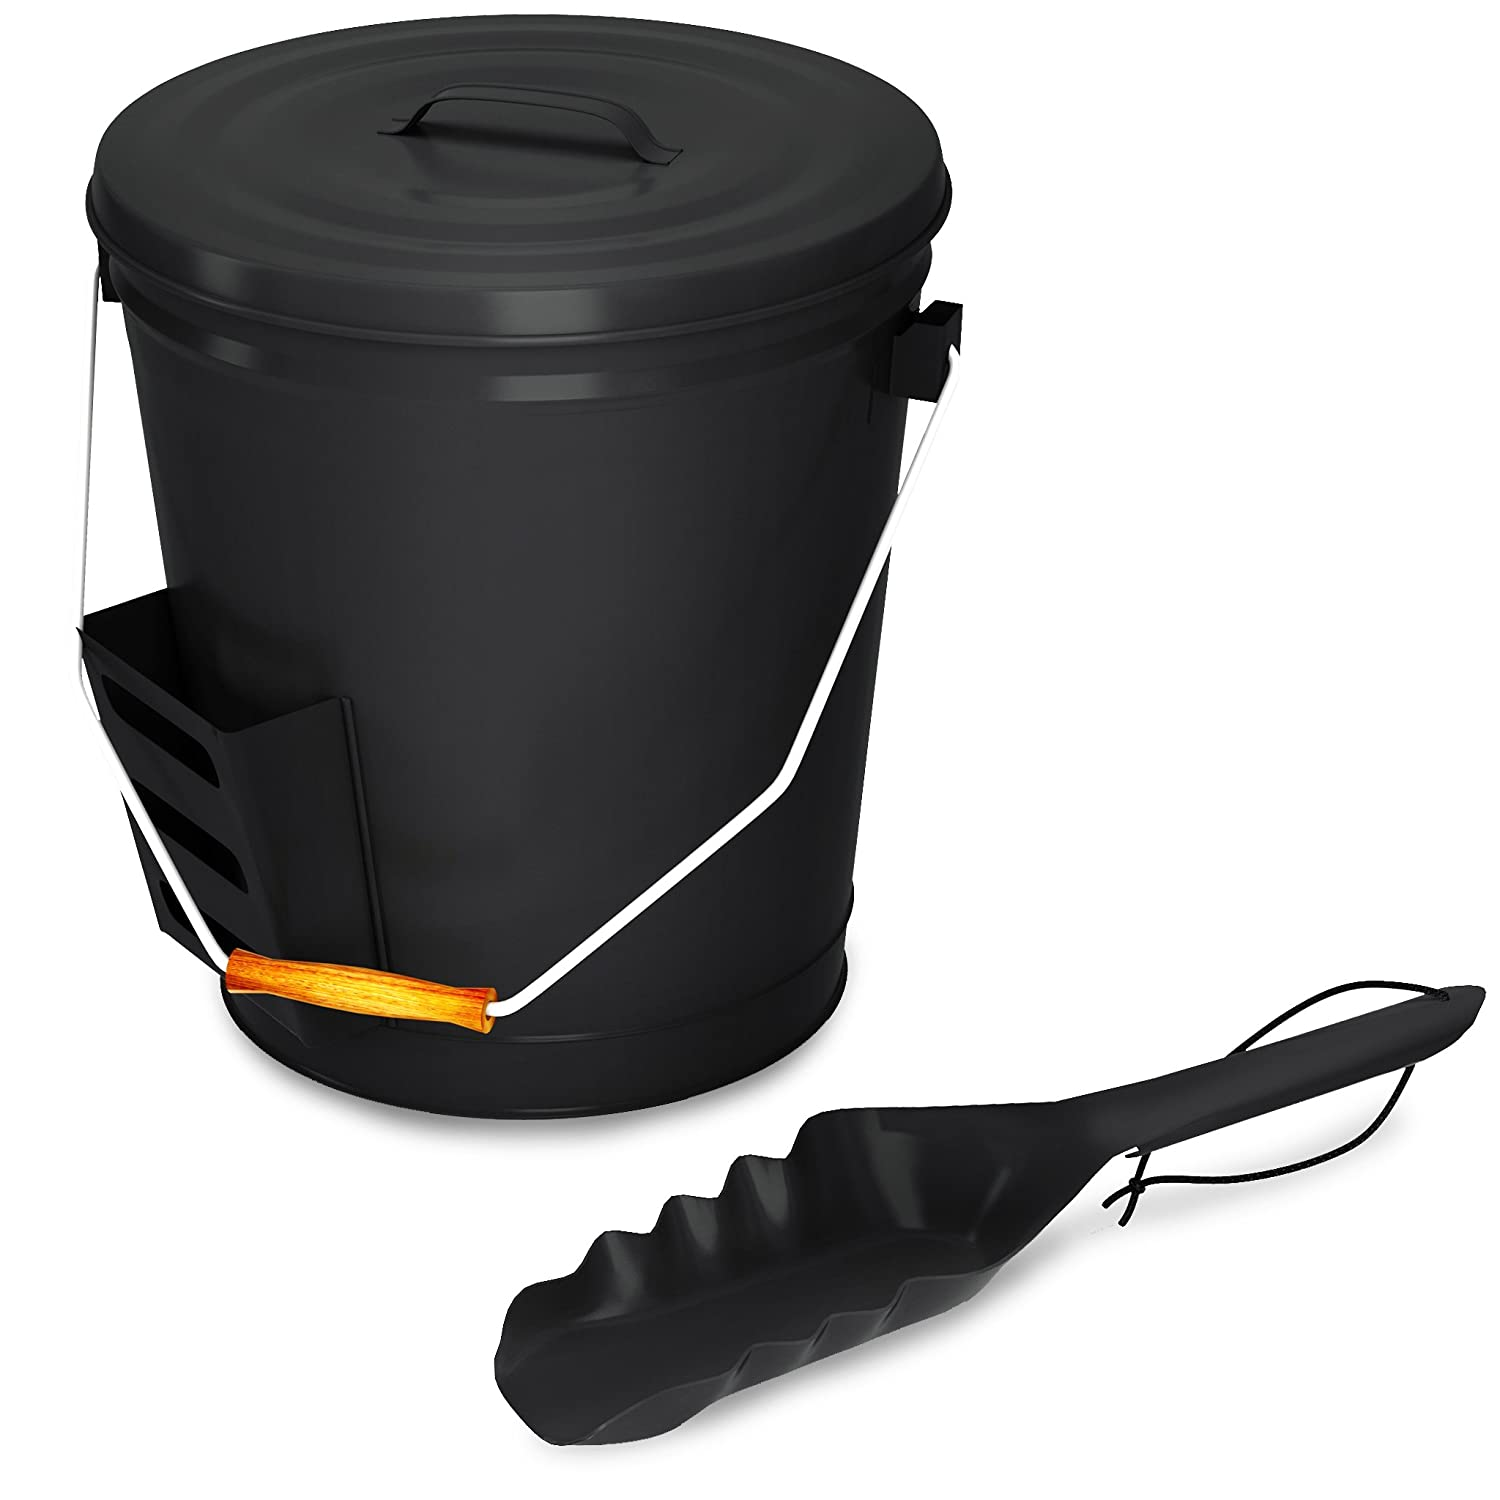 Amazon.com: Black Ash Bucket with Lid and Shovel For Fireplace ...